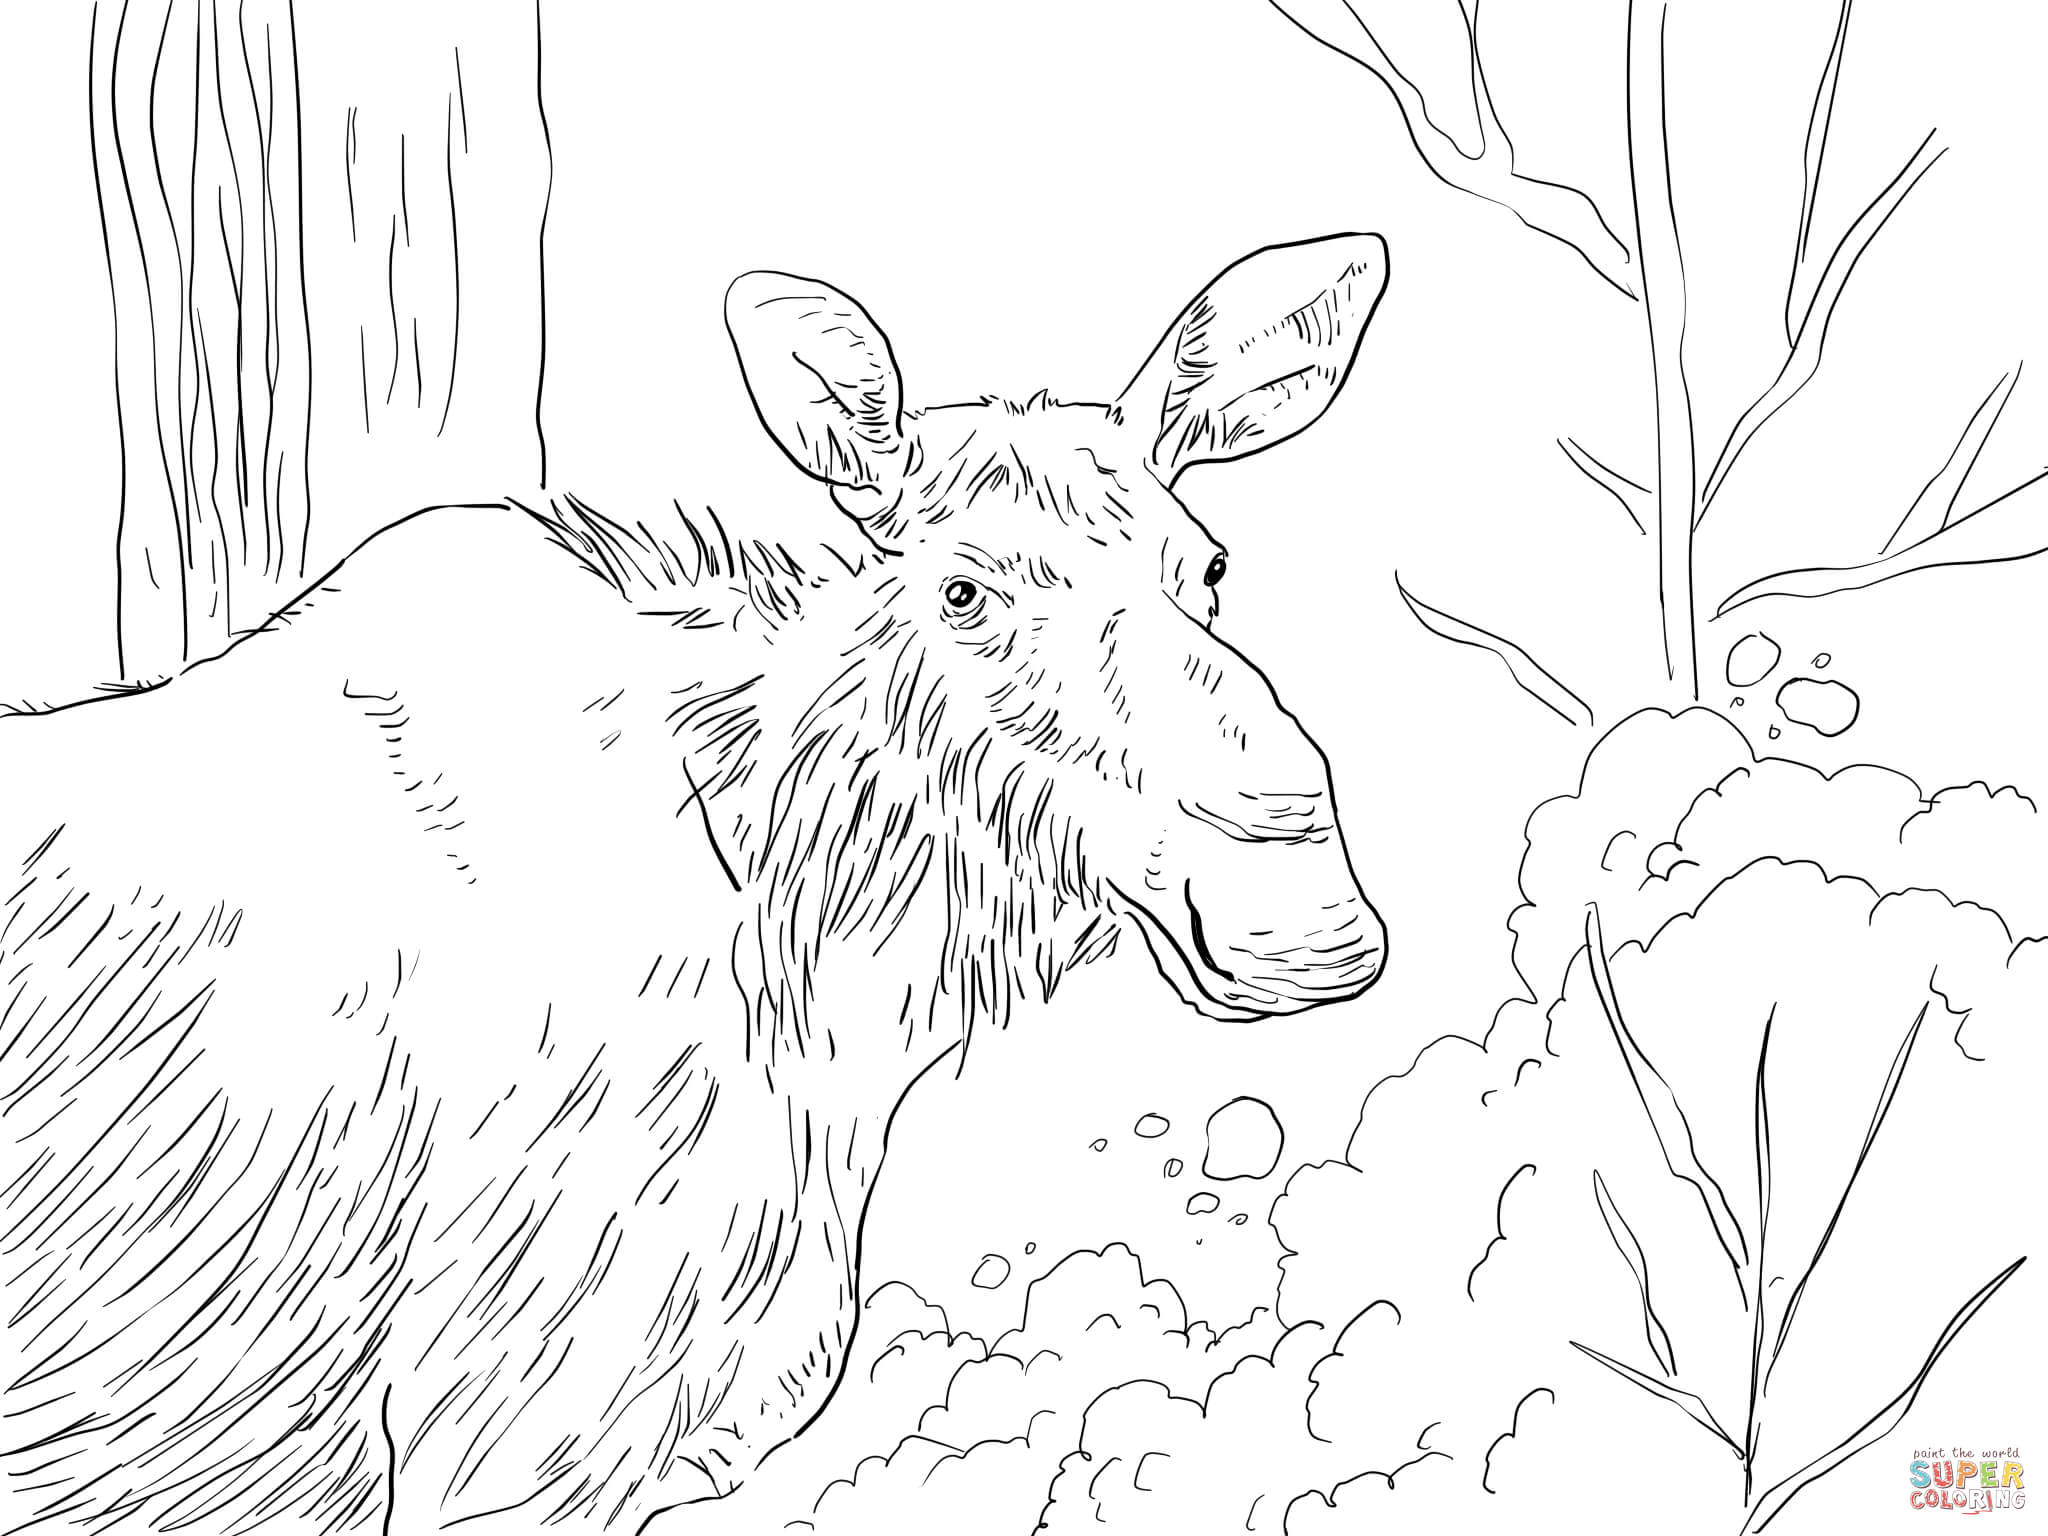 moose-coloring-page-0002-q1